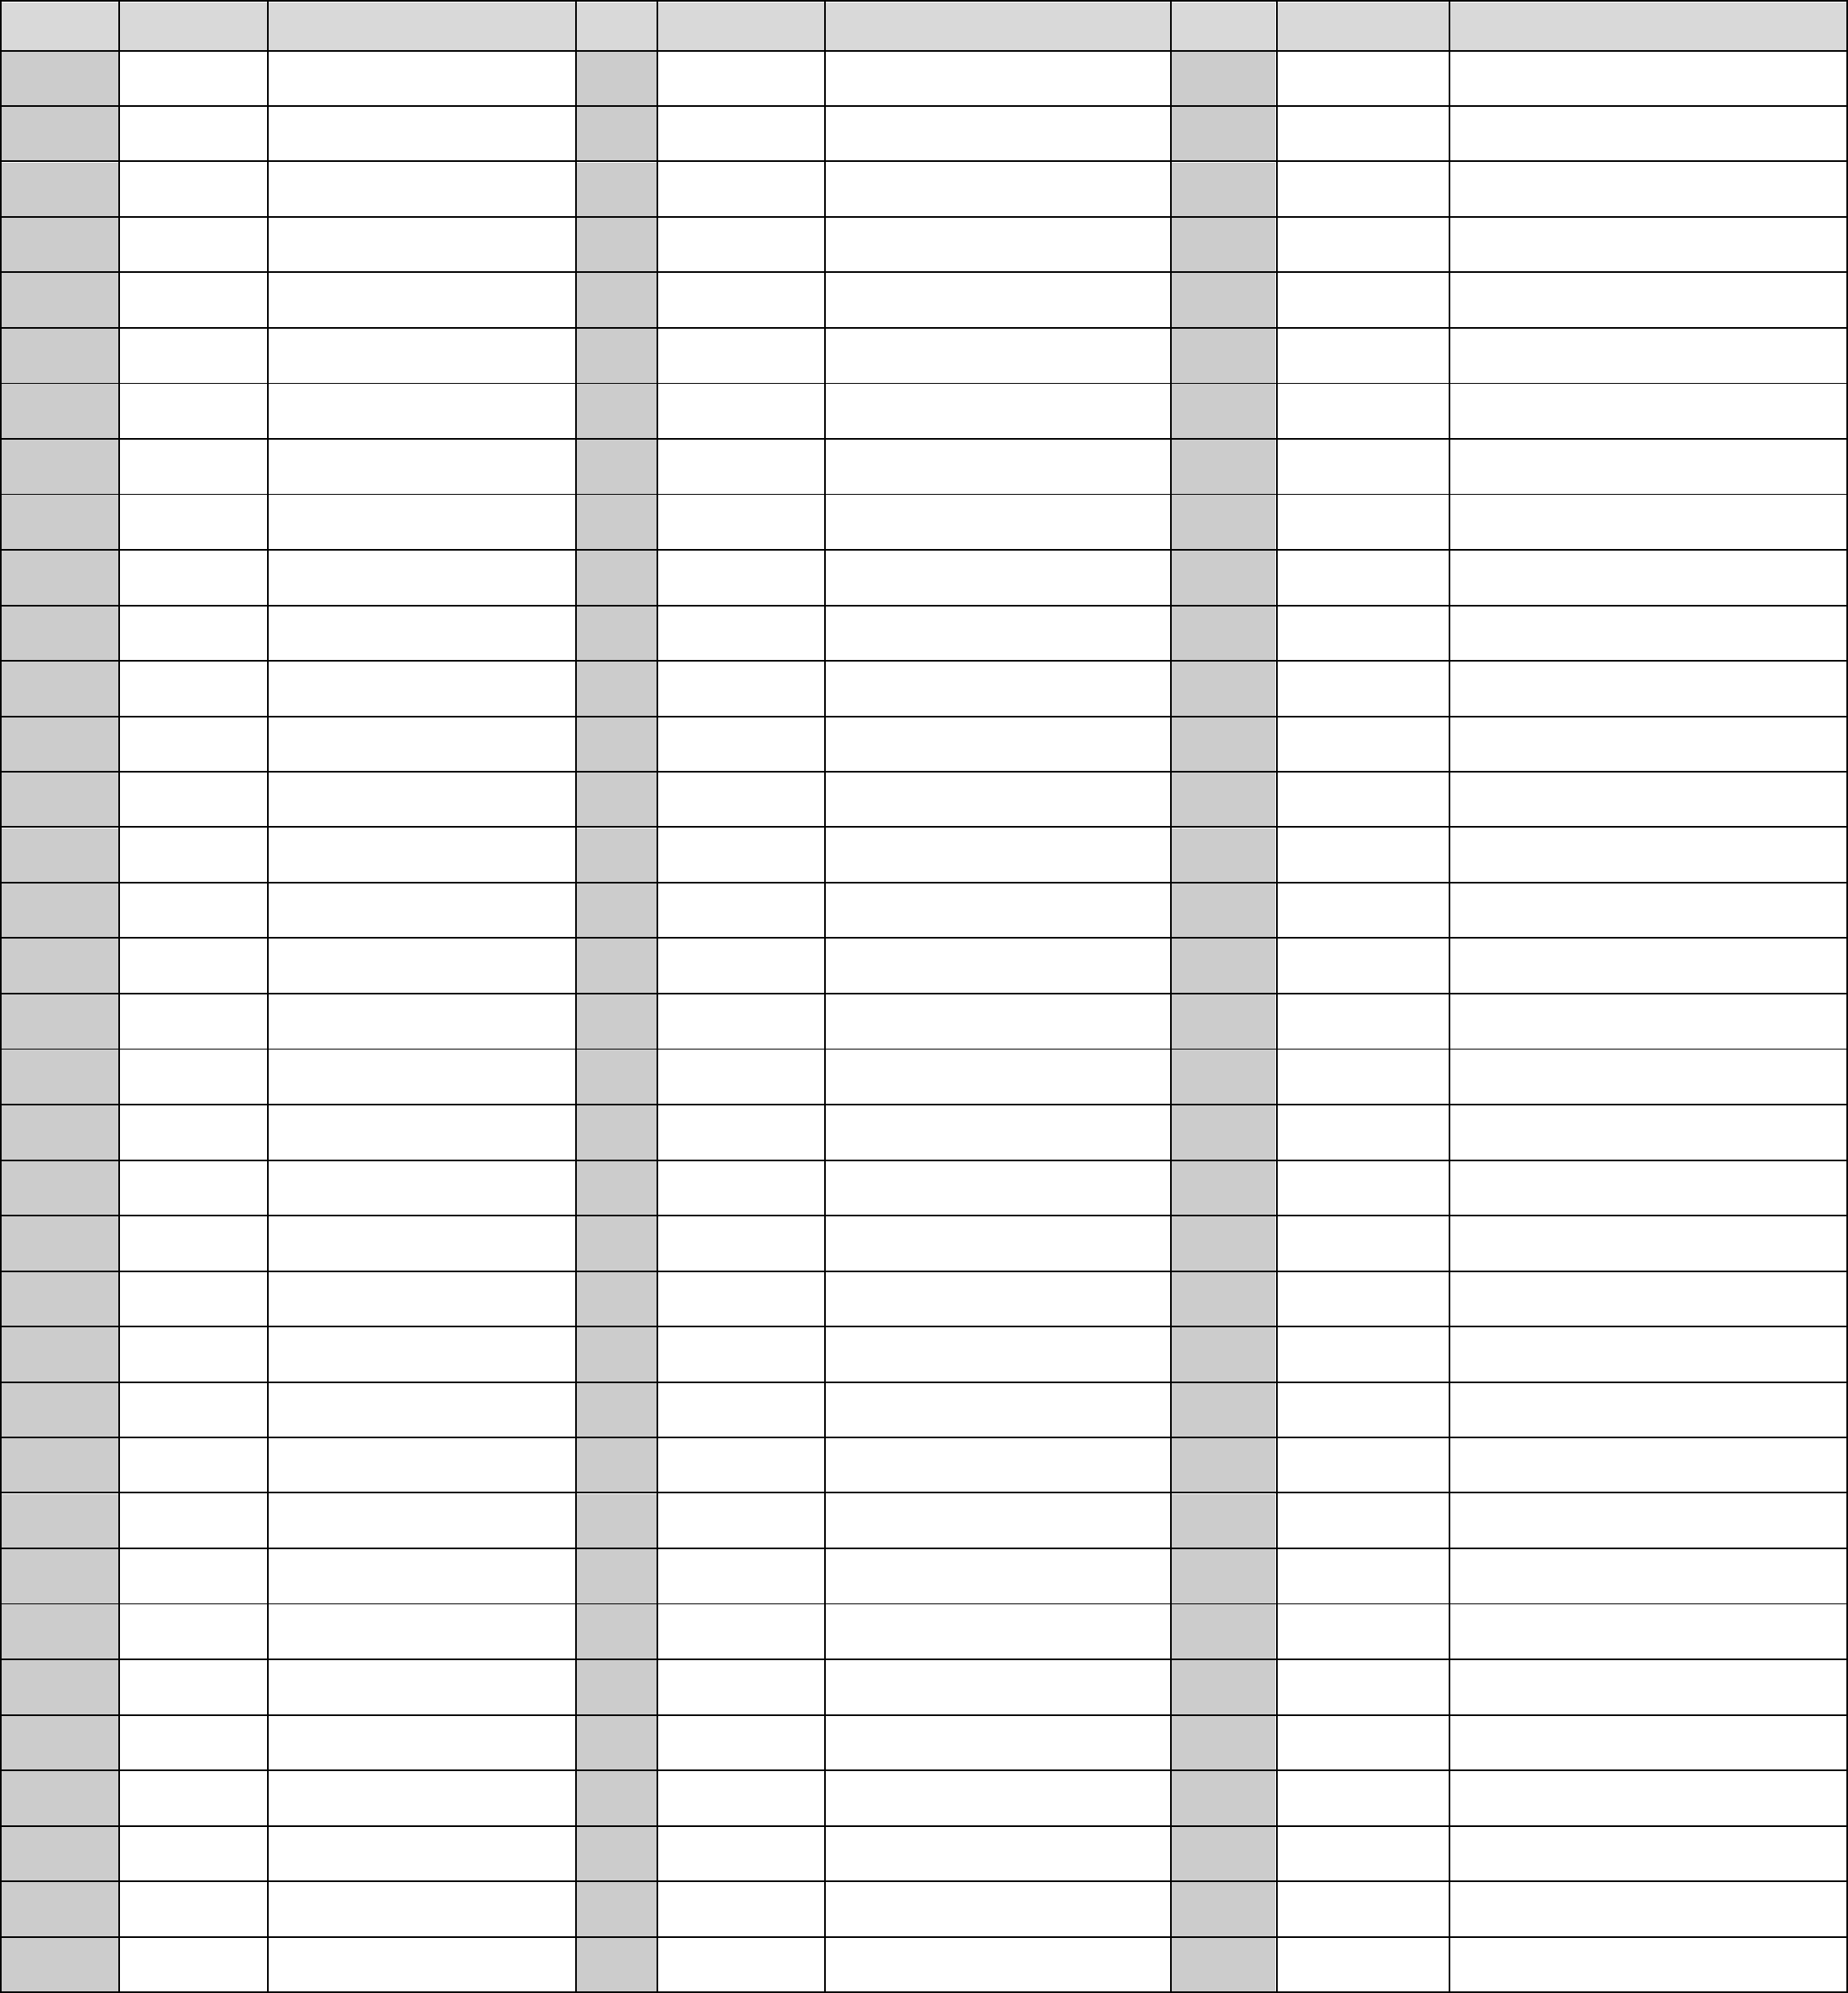 Basic Roman Numeral Chart Free Download